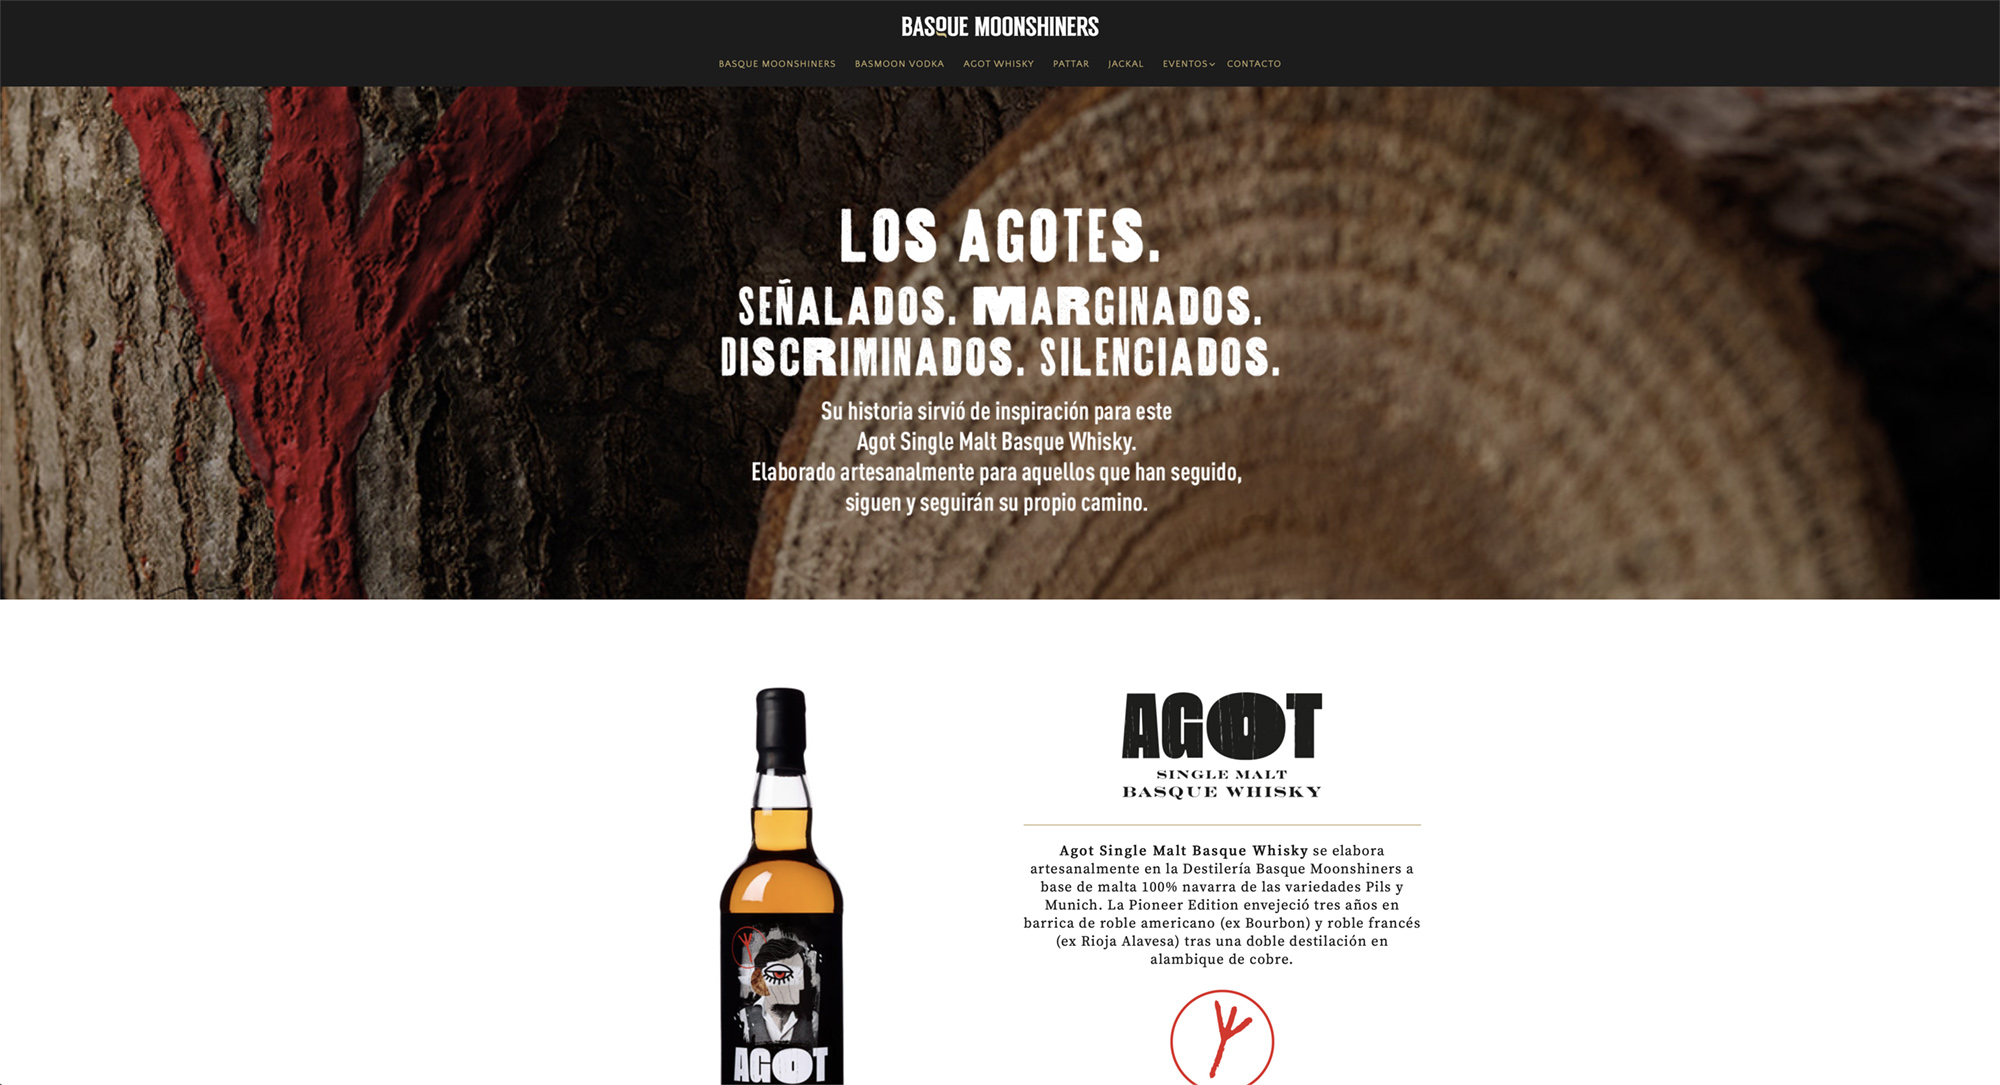 whisky agot Basque moonshiners photography Profoto phase one erredehierro vitoria Gasteiz Pais vasco españa estudio publicidad adveirtaising